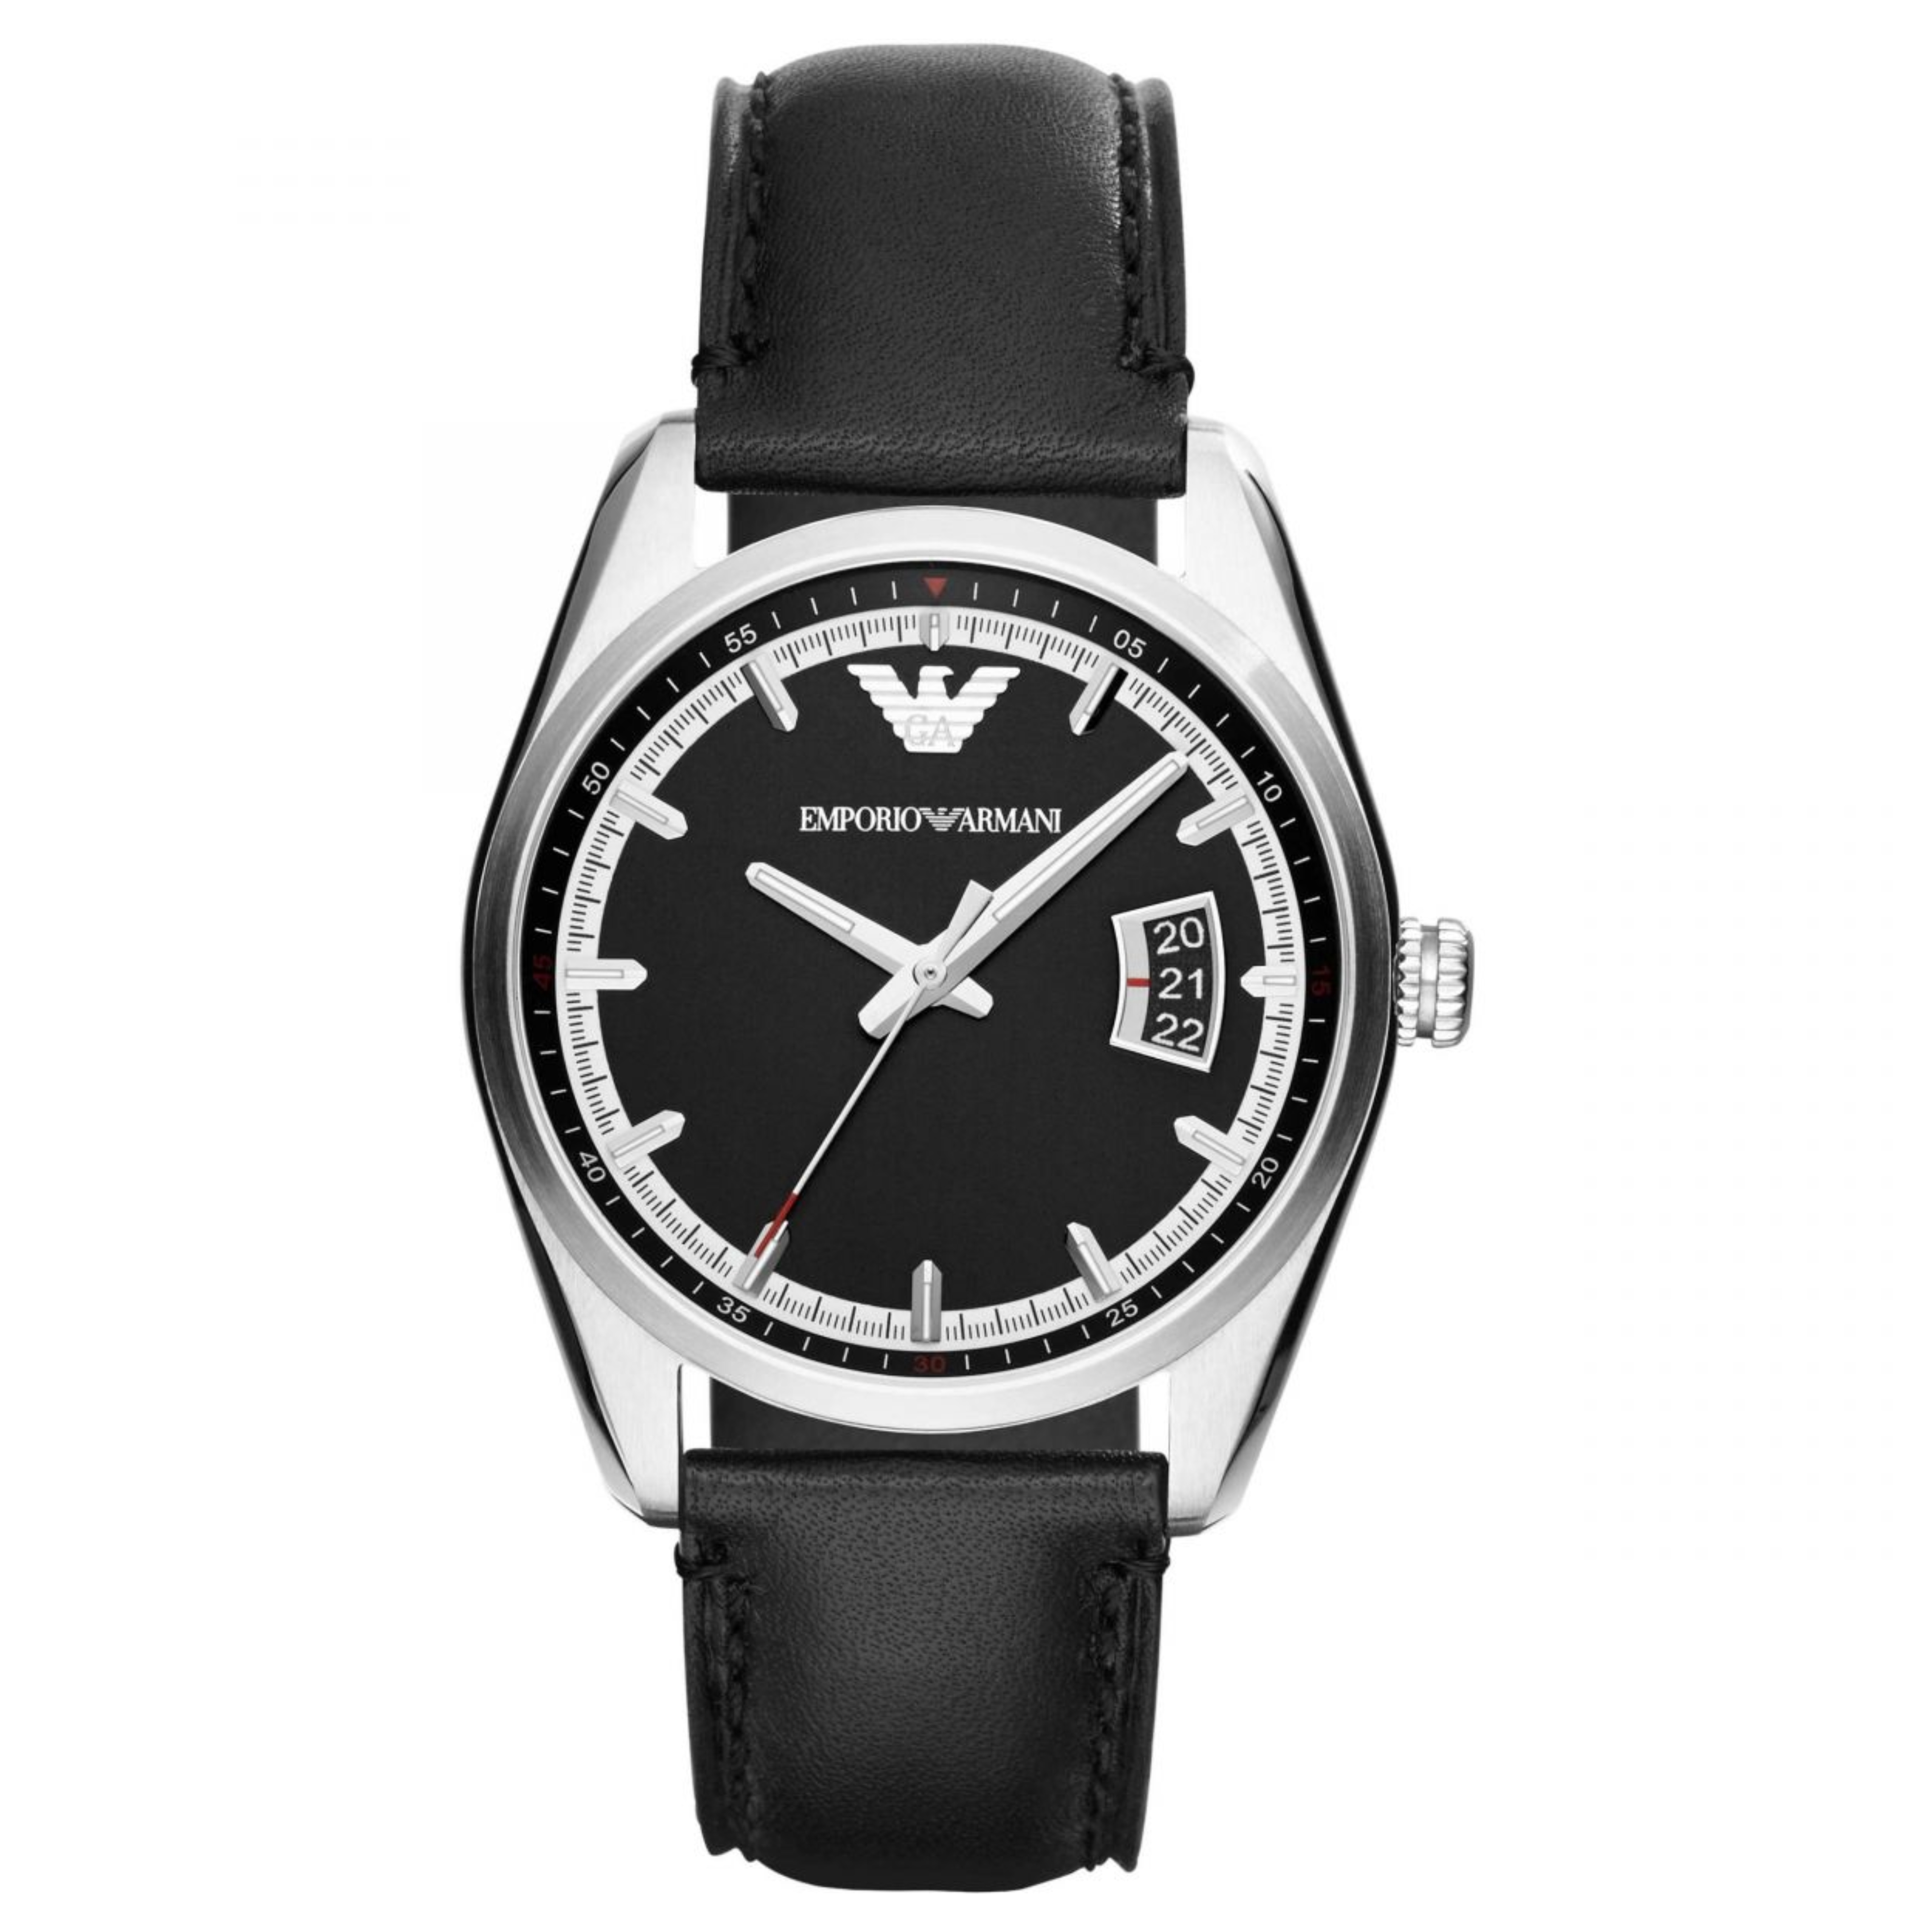 Emporio Armani Men's Watch|Silver Case Round Black Dial|Black Leather Strap|6014